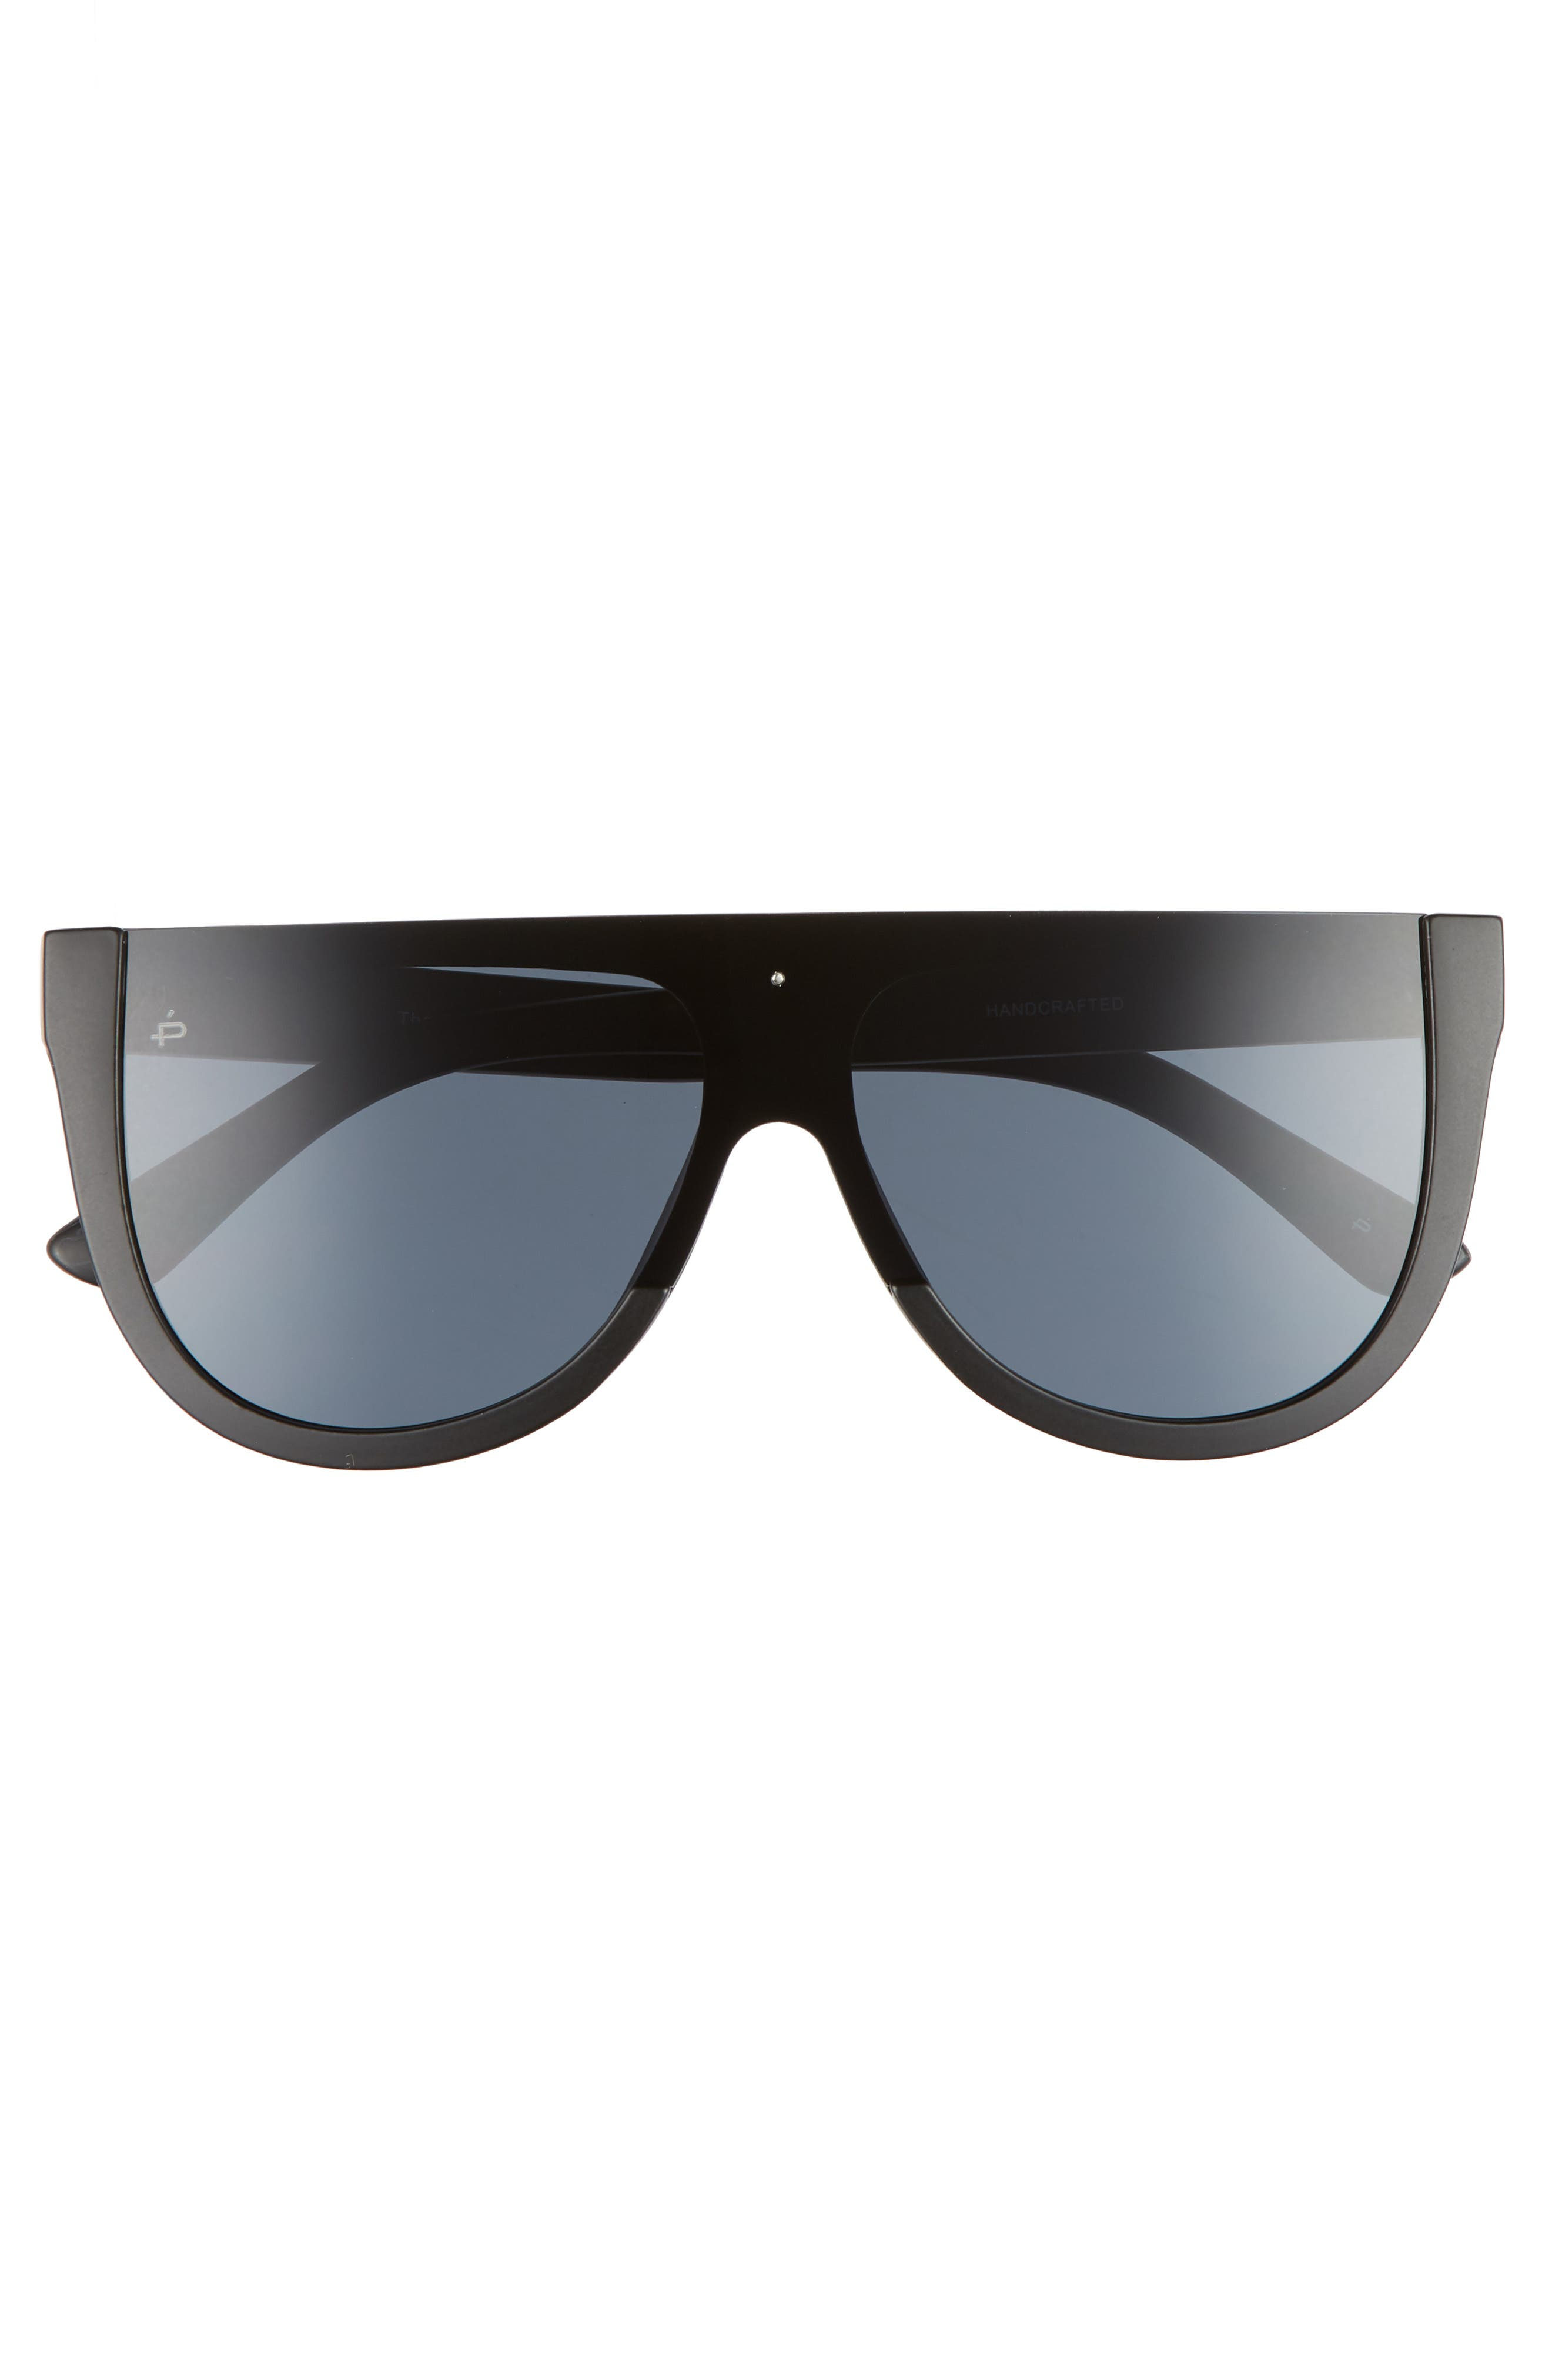 Privé Revaux The Coco 60mm Shield Sunglasses,                             Alternate thumbnail 4, color,                             Black